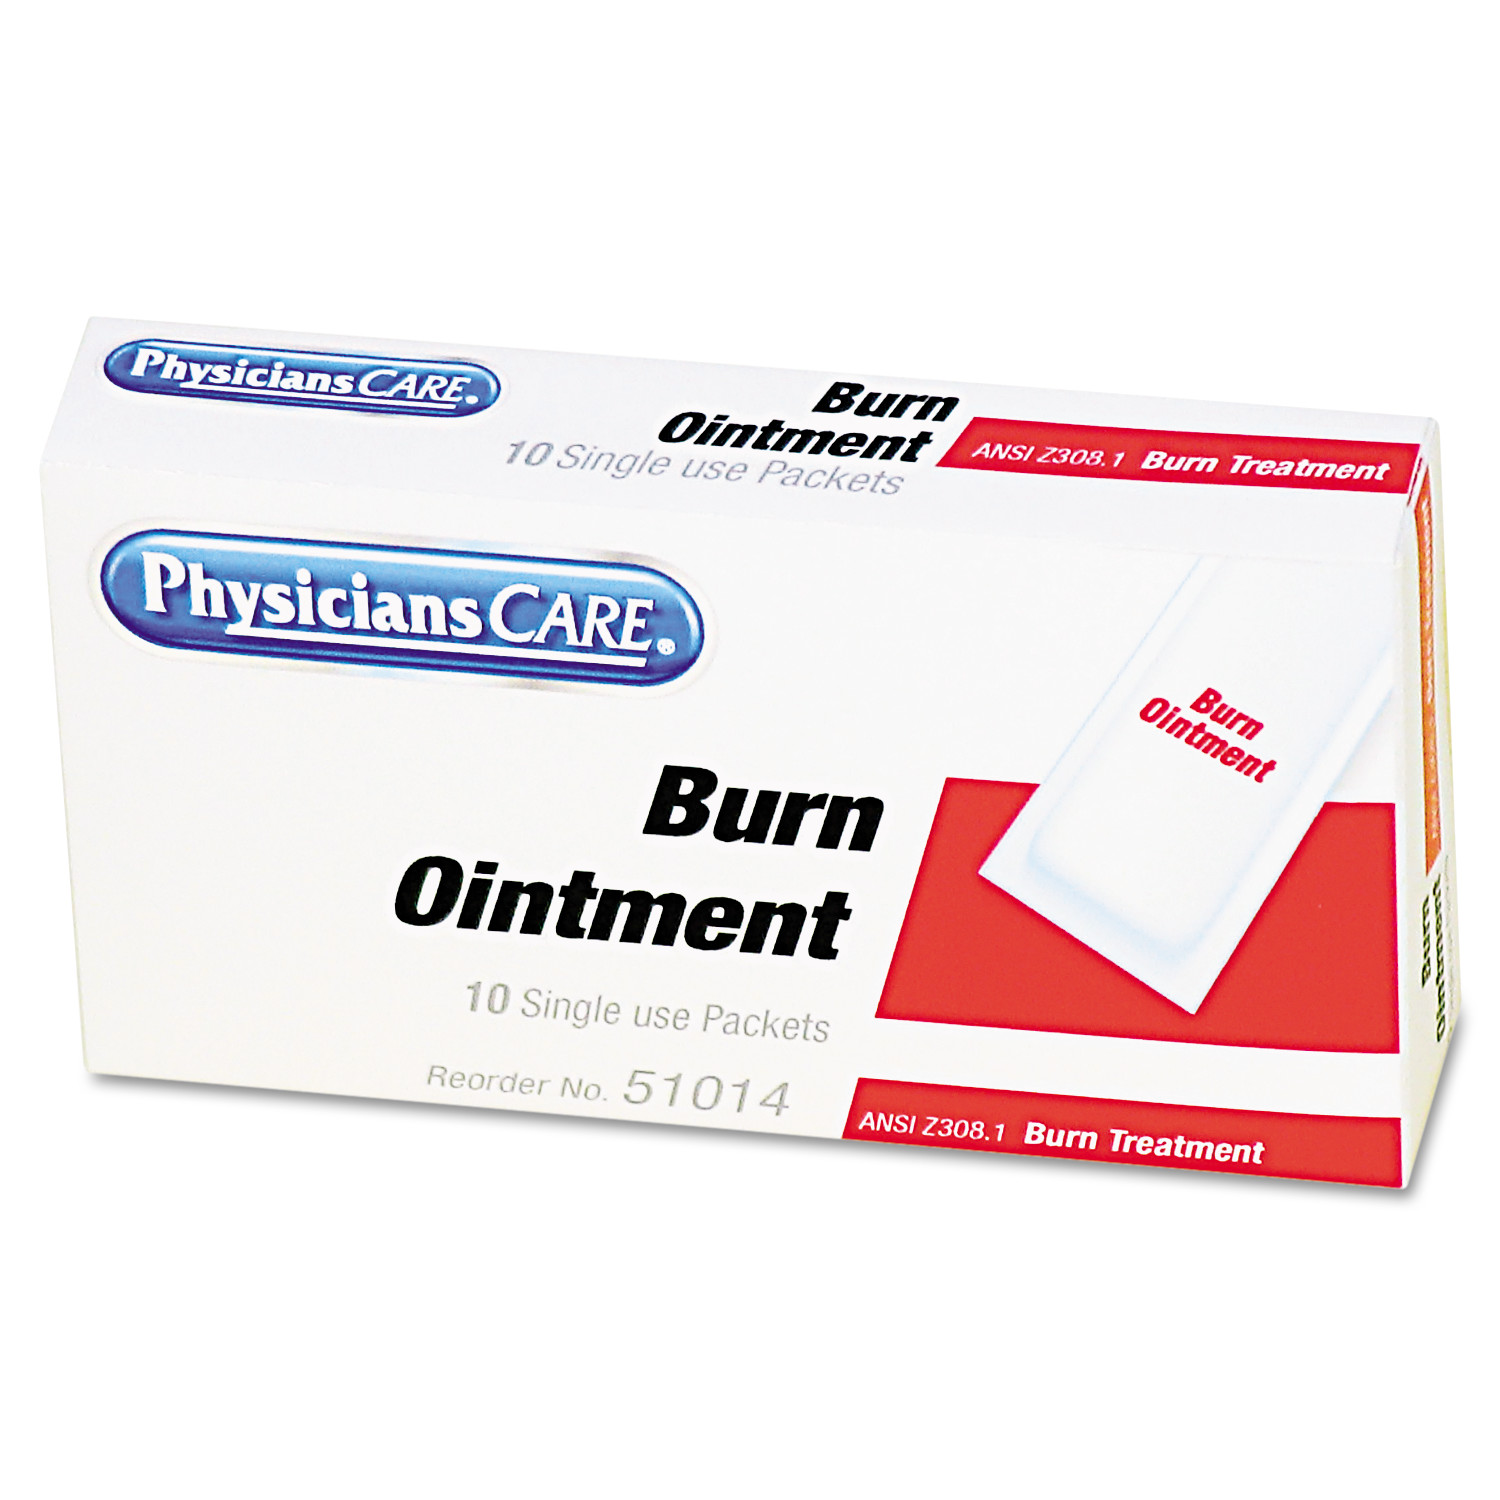 PhysiciansCare by First Aid Only First Aid Kit Refill Burn Cream Packets, 12/Box